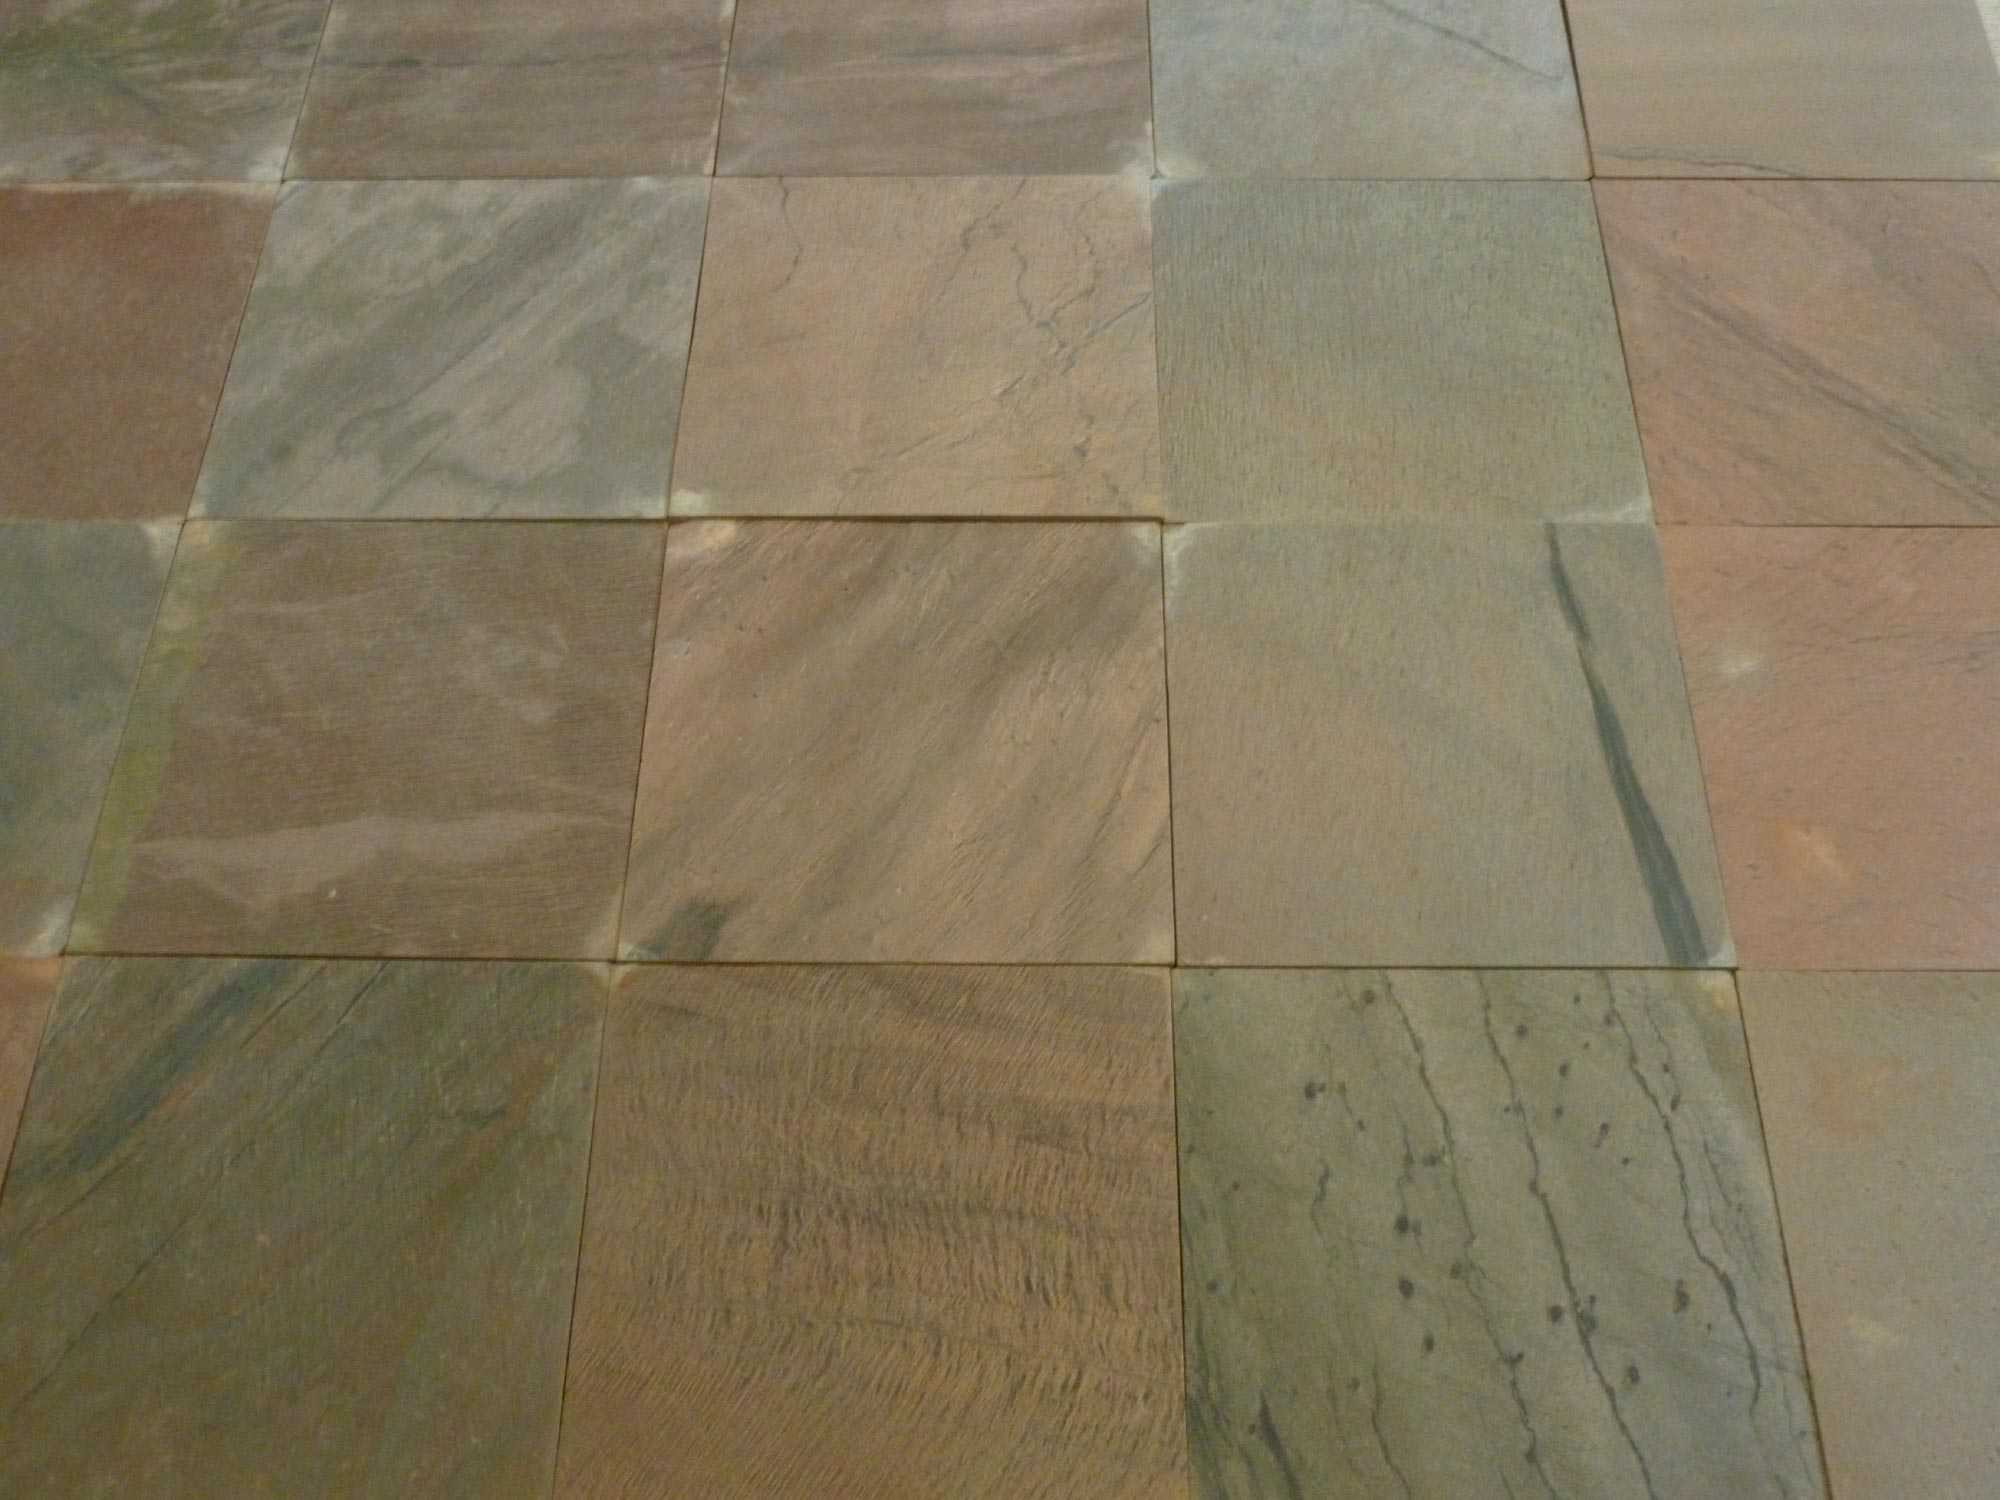 hardwood floor maintenance crossword clue of installing slate tile regarding dry lay slate tiles 4 56a2fdeb3df78cf7727b6e64